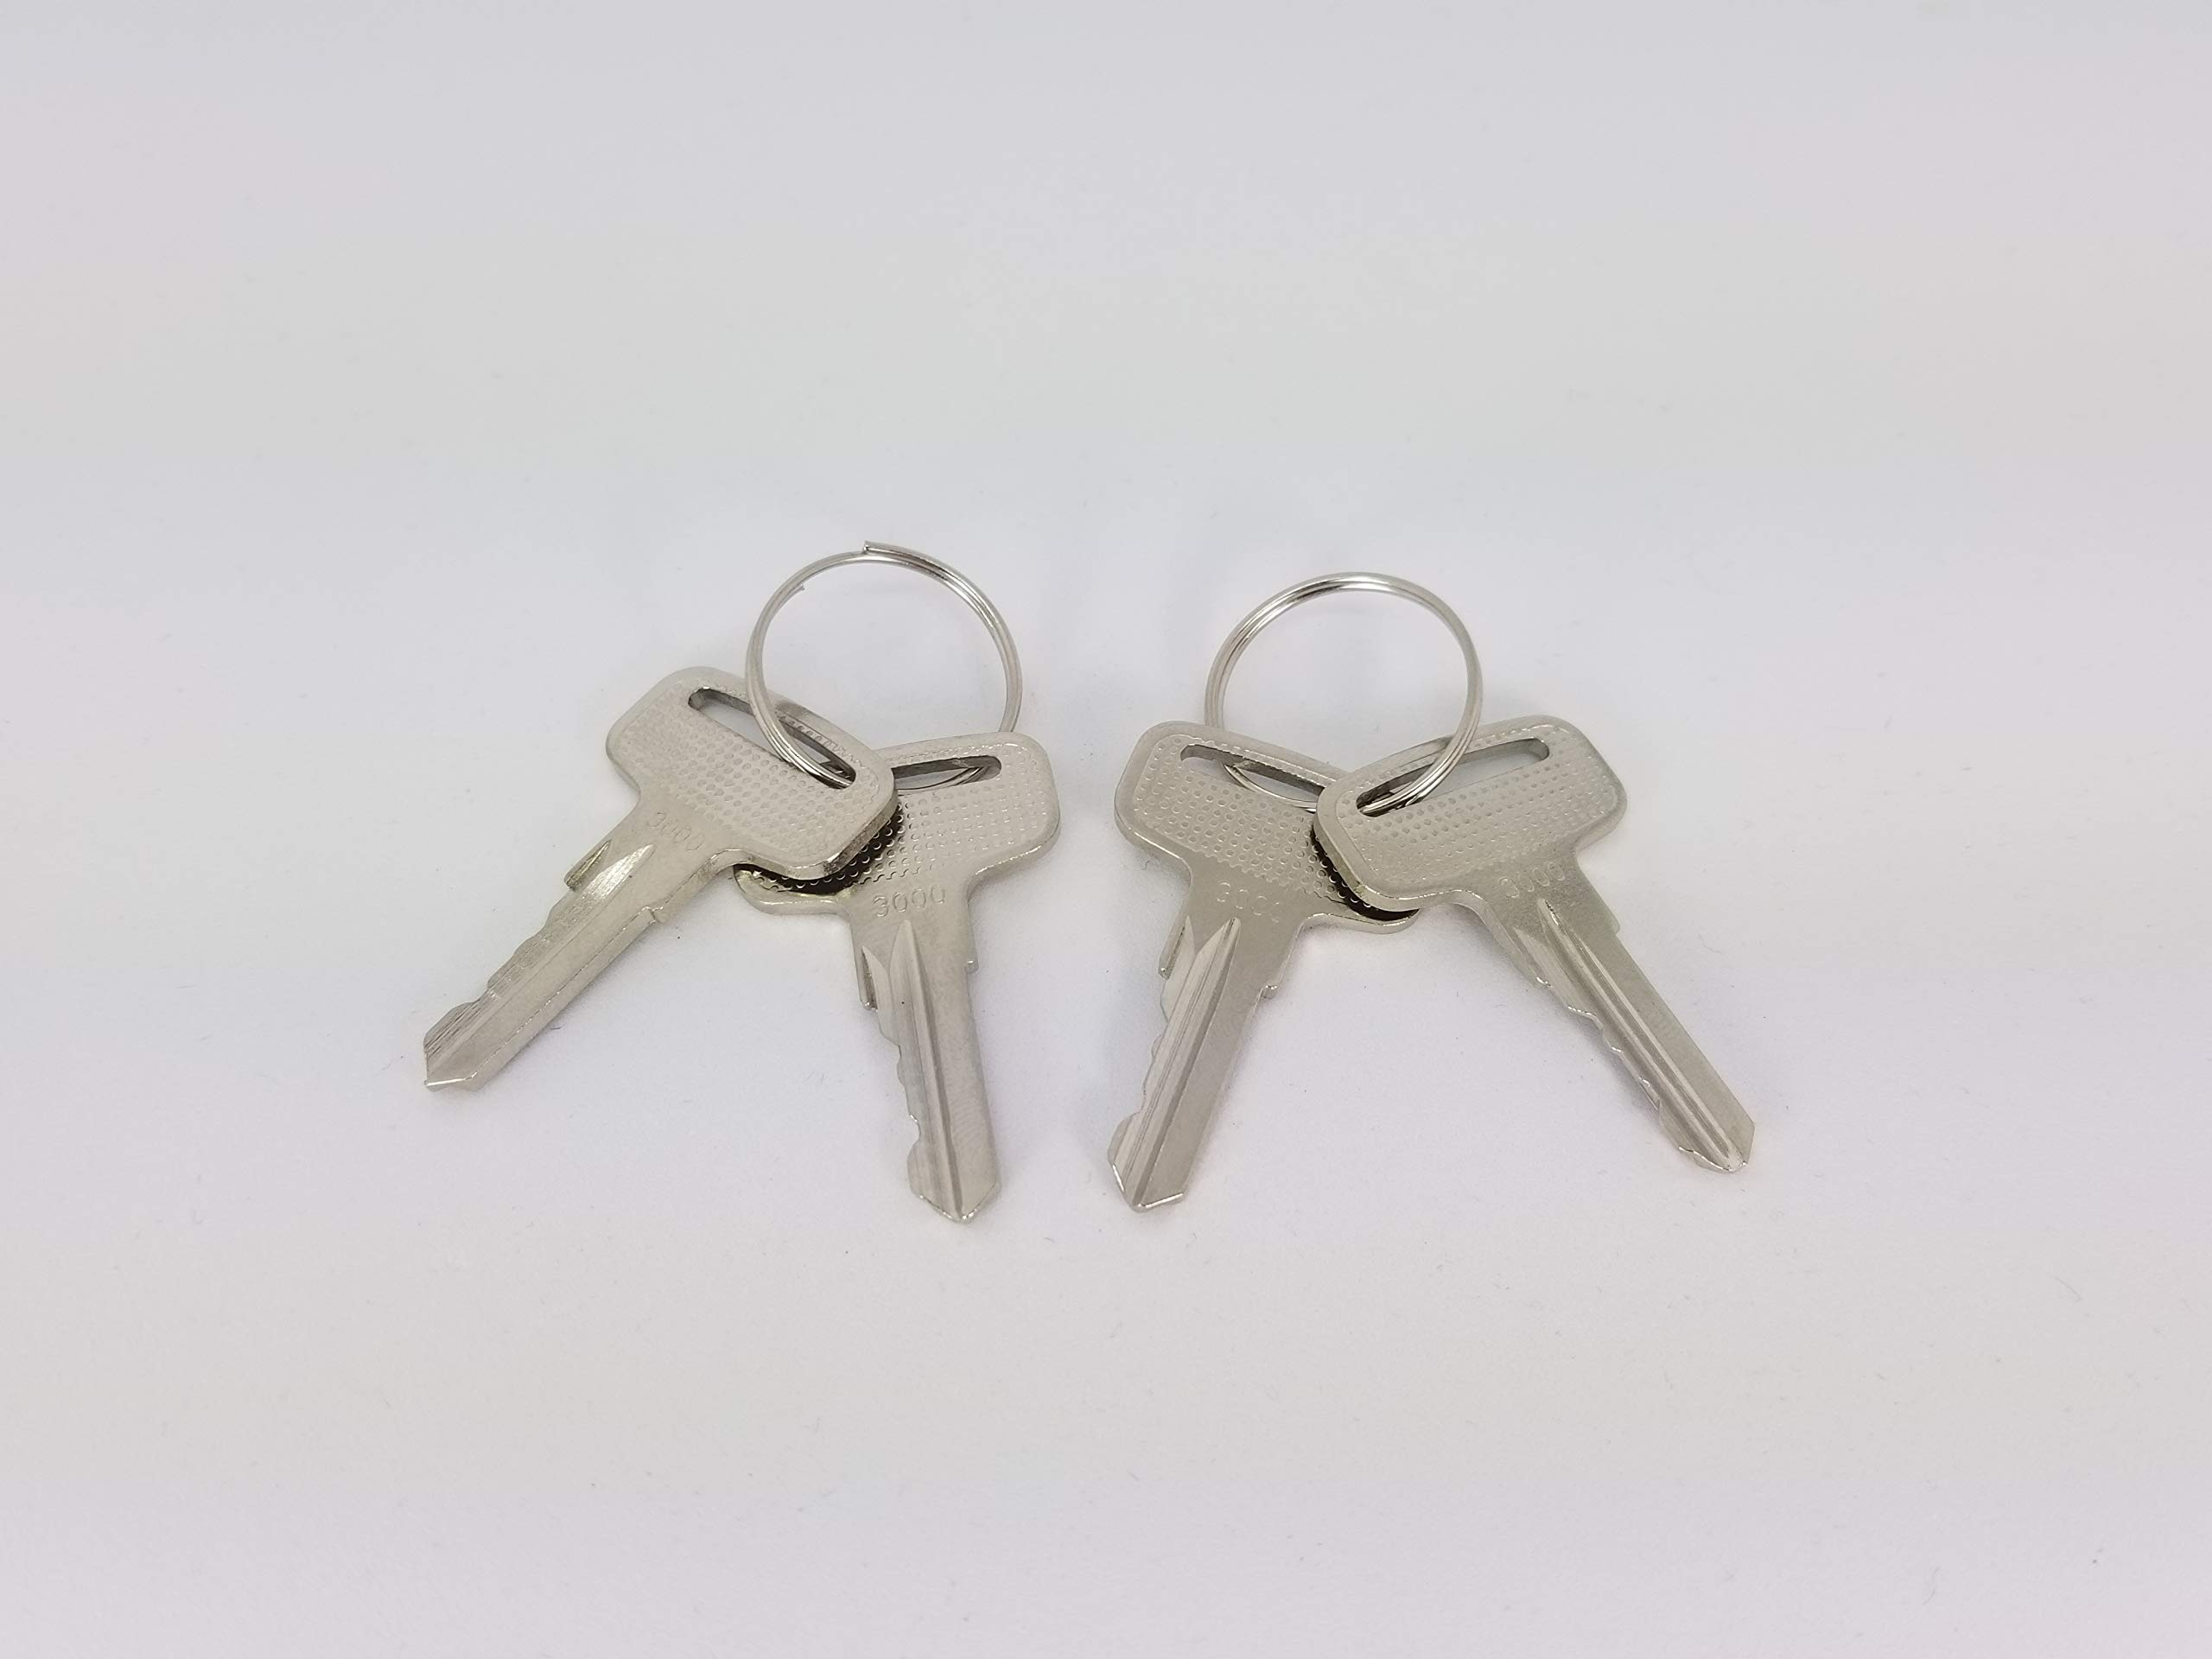 83093 Key, Spare (2 Sets) - Fits Genie